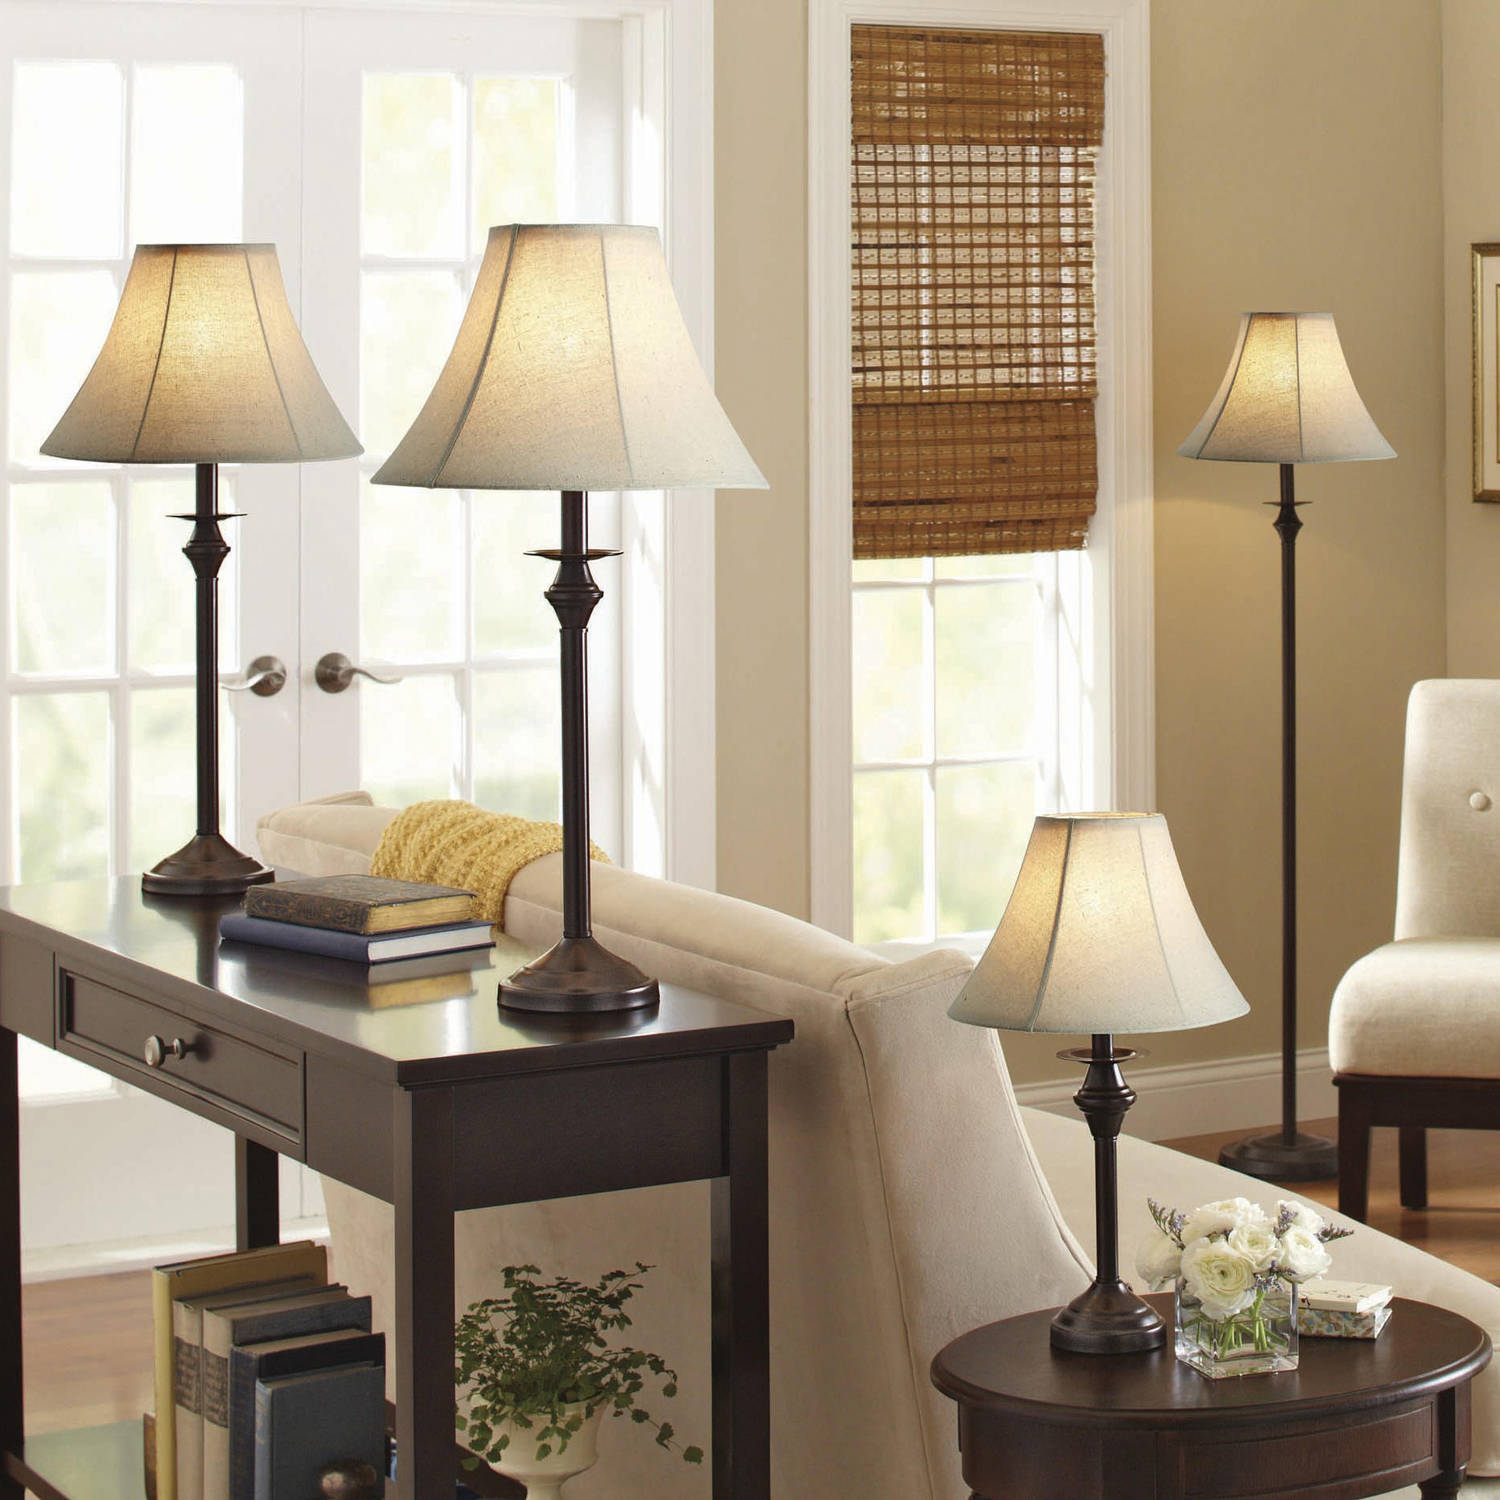 Better Homes and Gardens 4-Piece Lamp Set, Dark Brown Finish ...